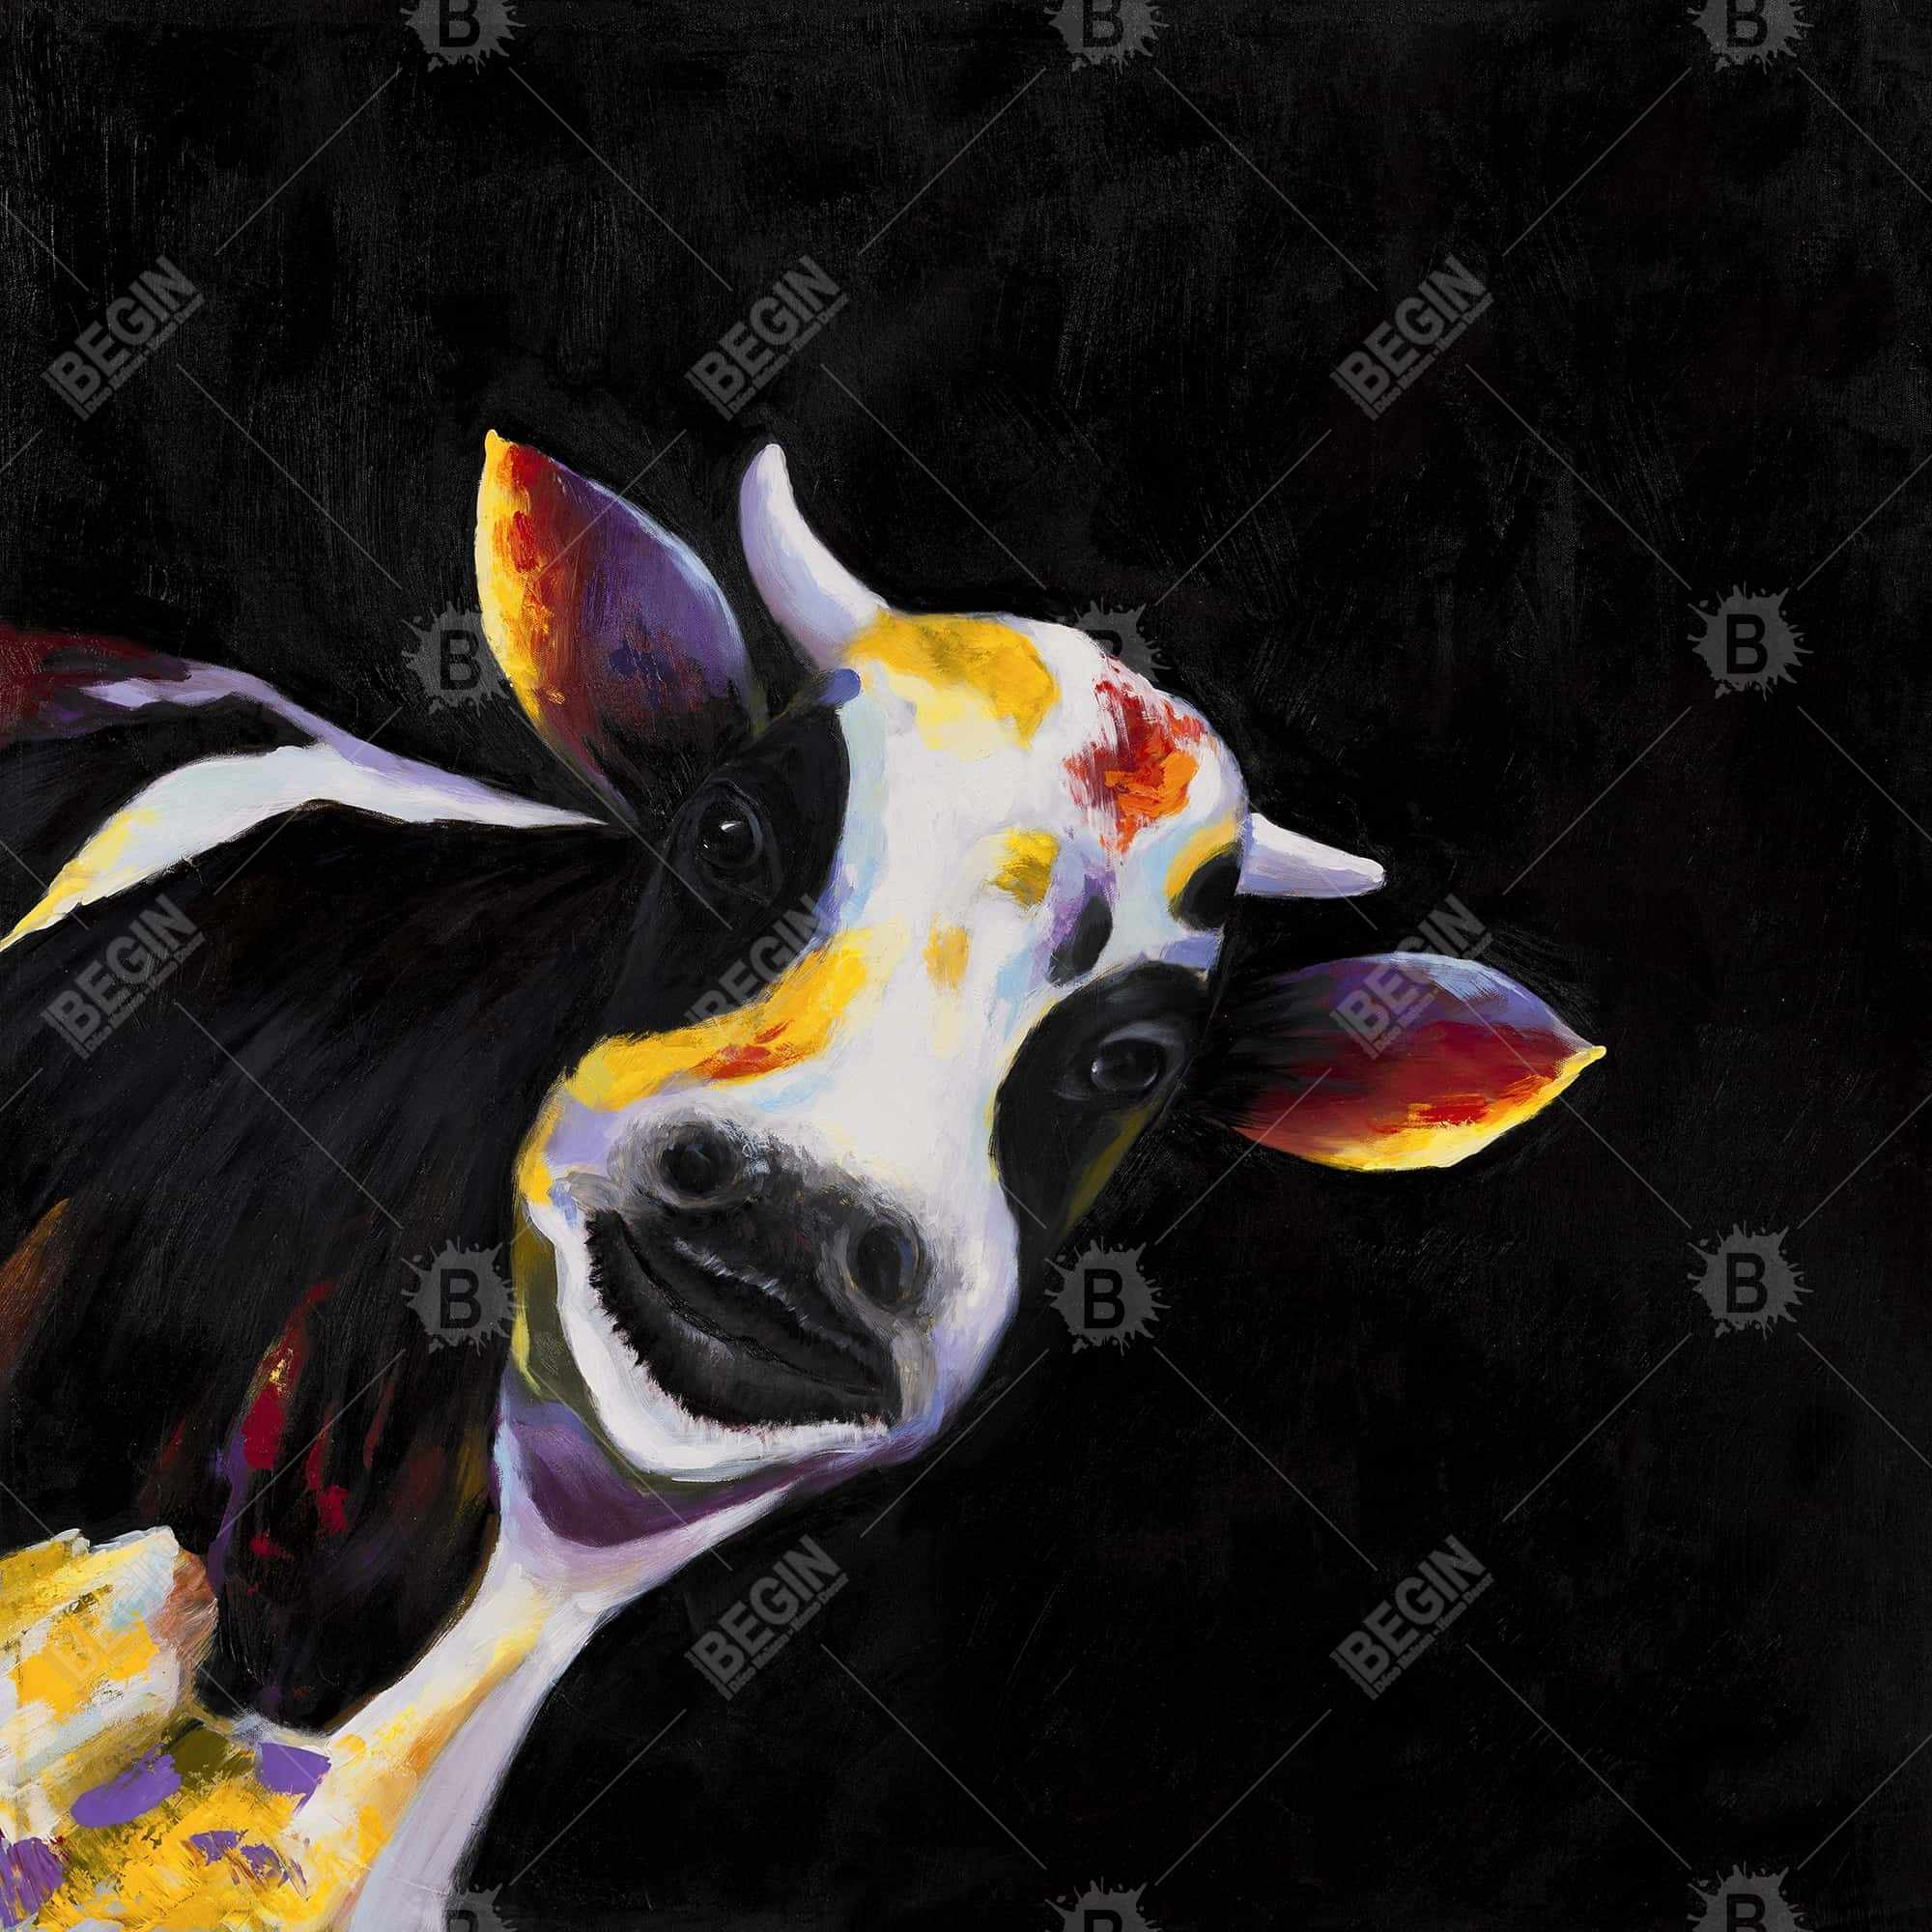 One funny cow